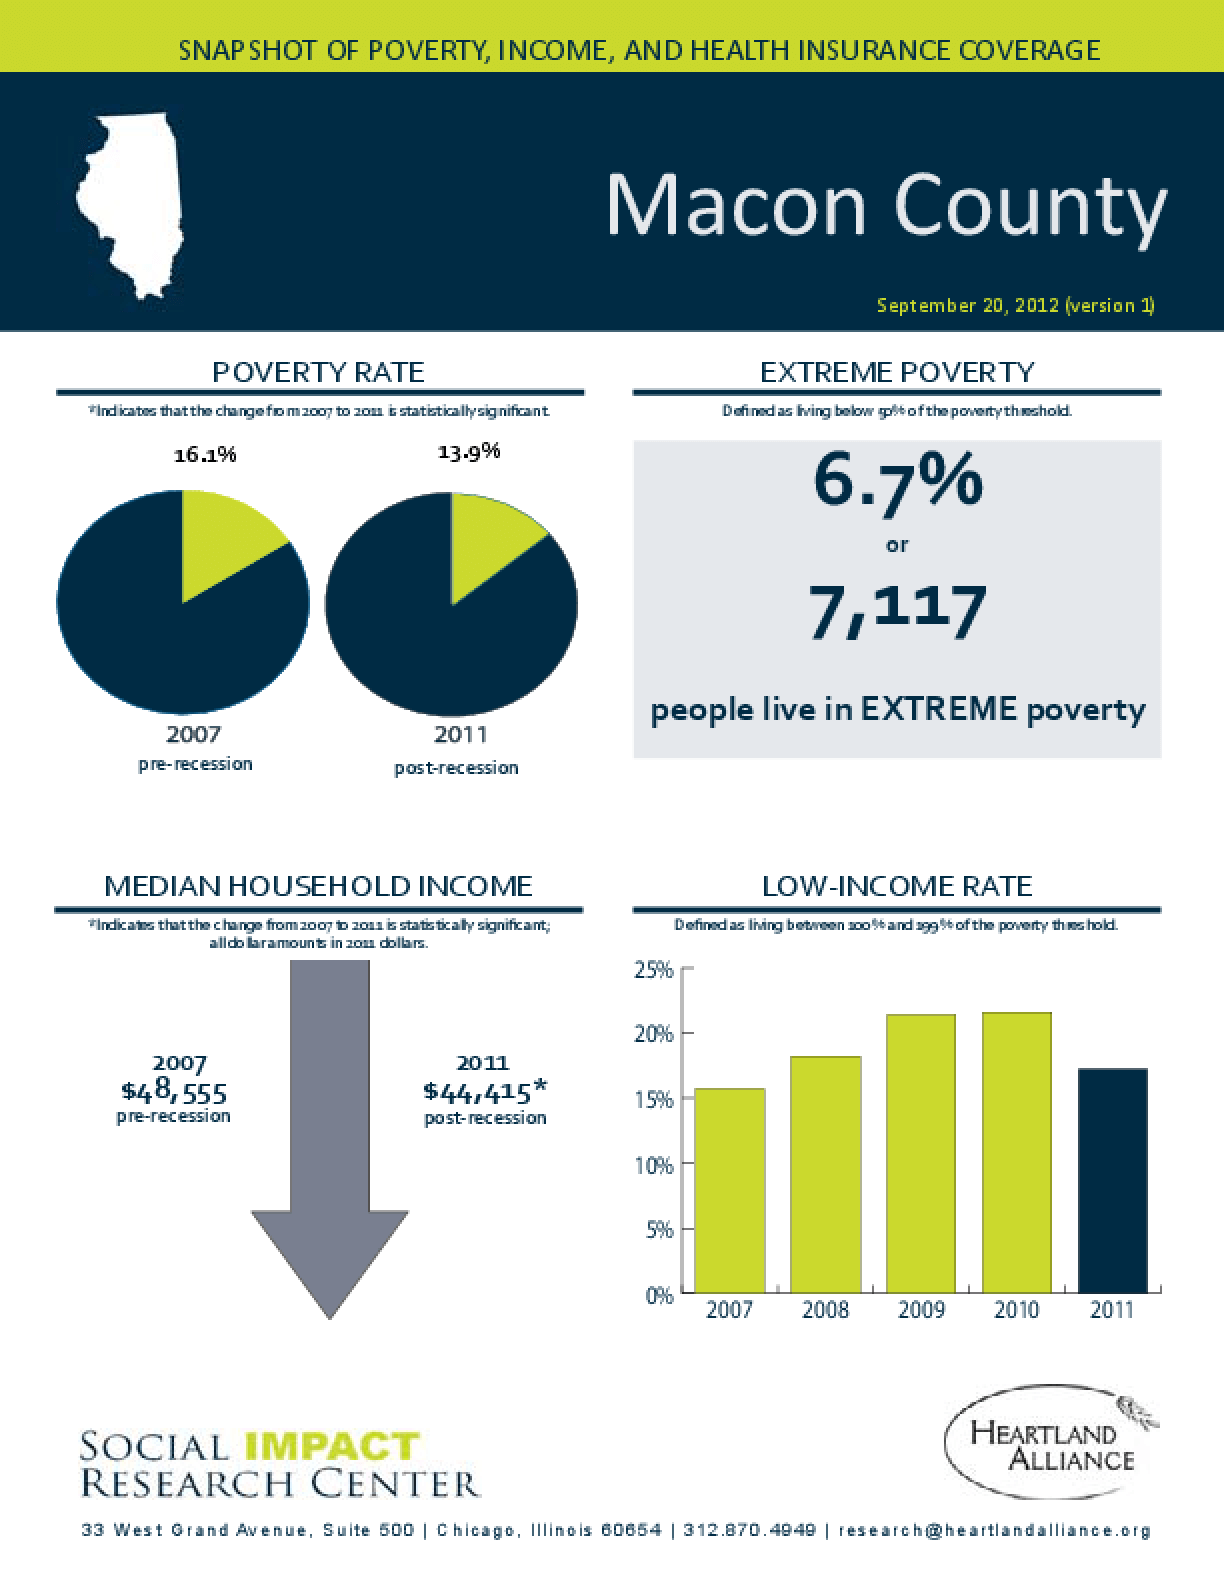 Macon County: Snapshot of Poverty, Income, and Health Insurance Coverage - 2011